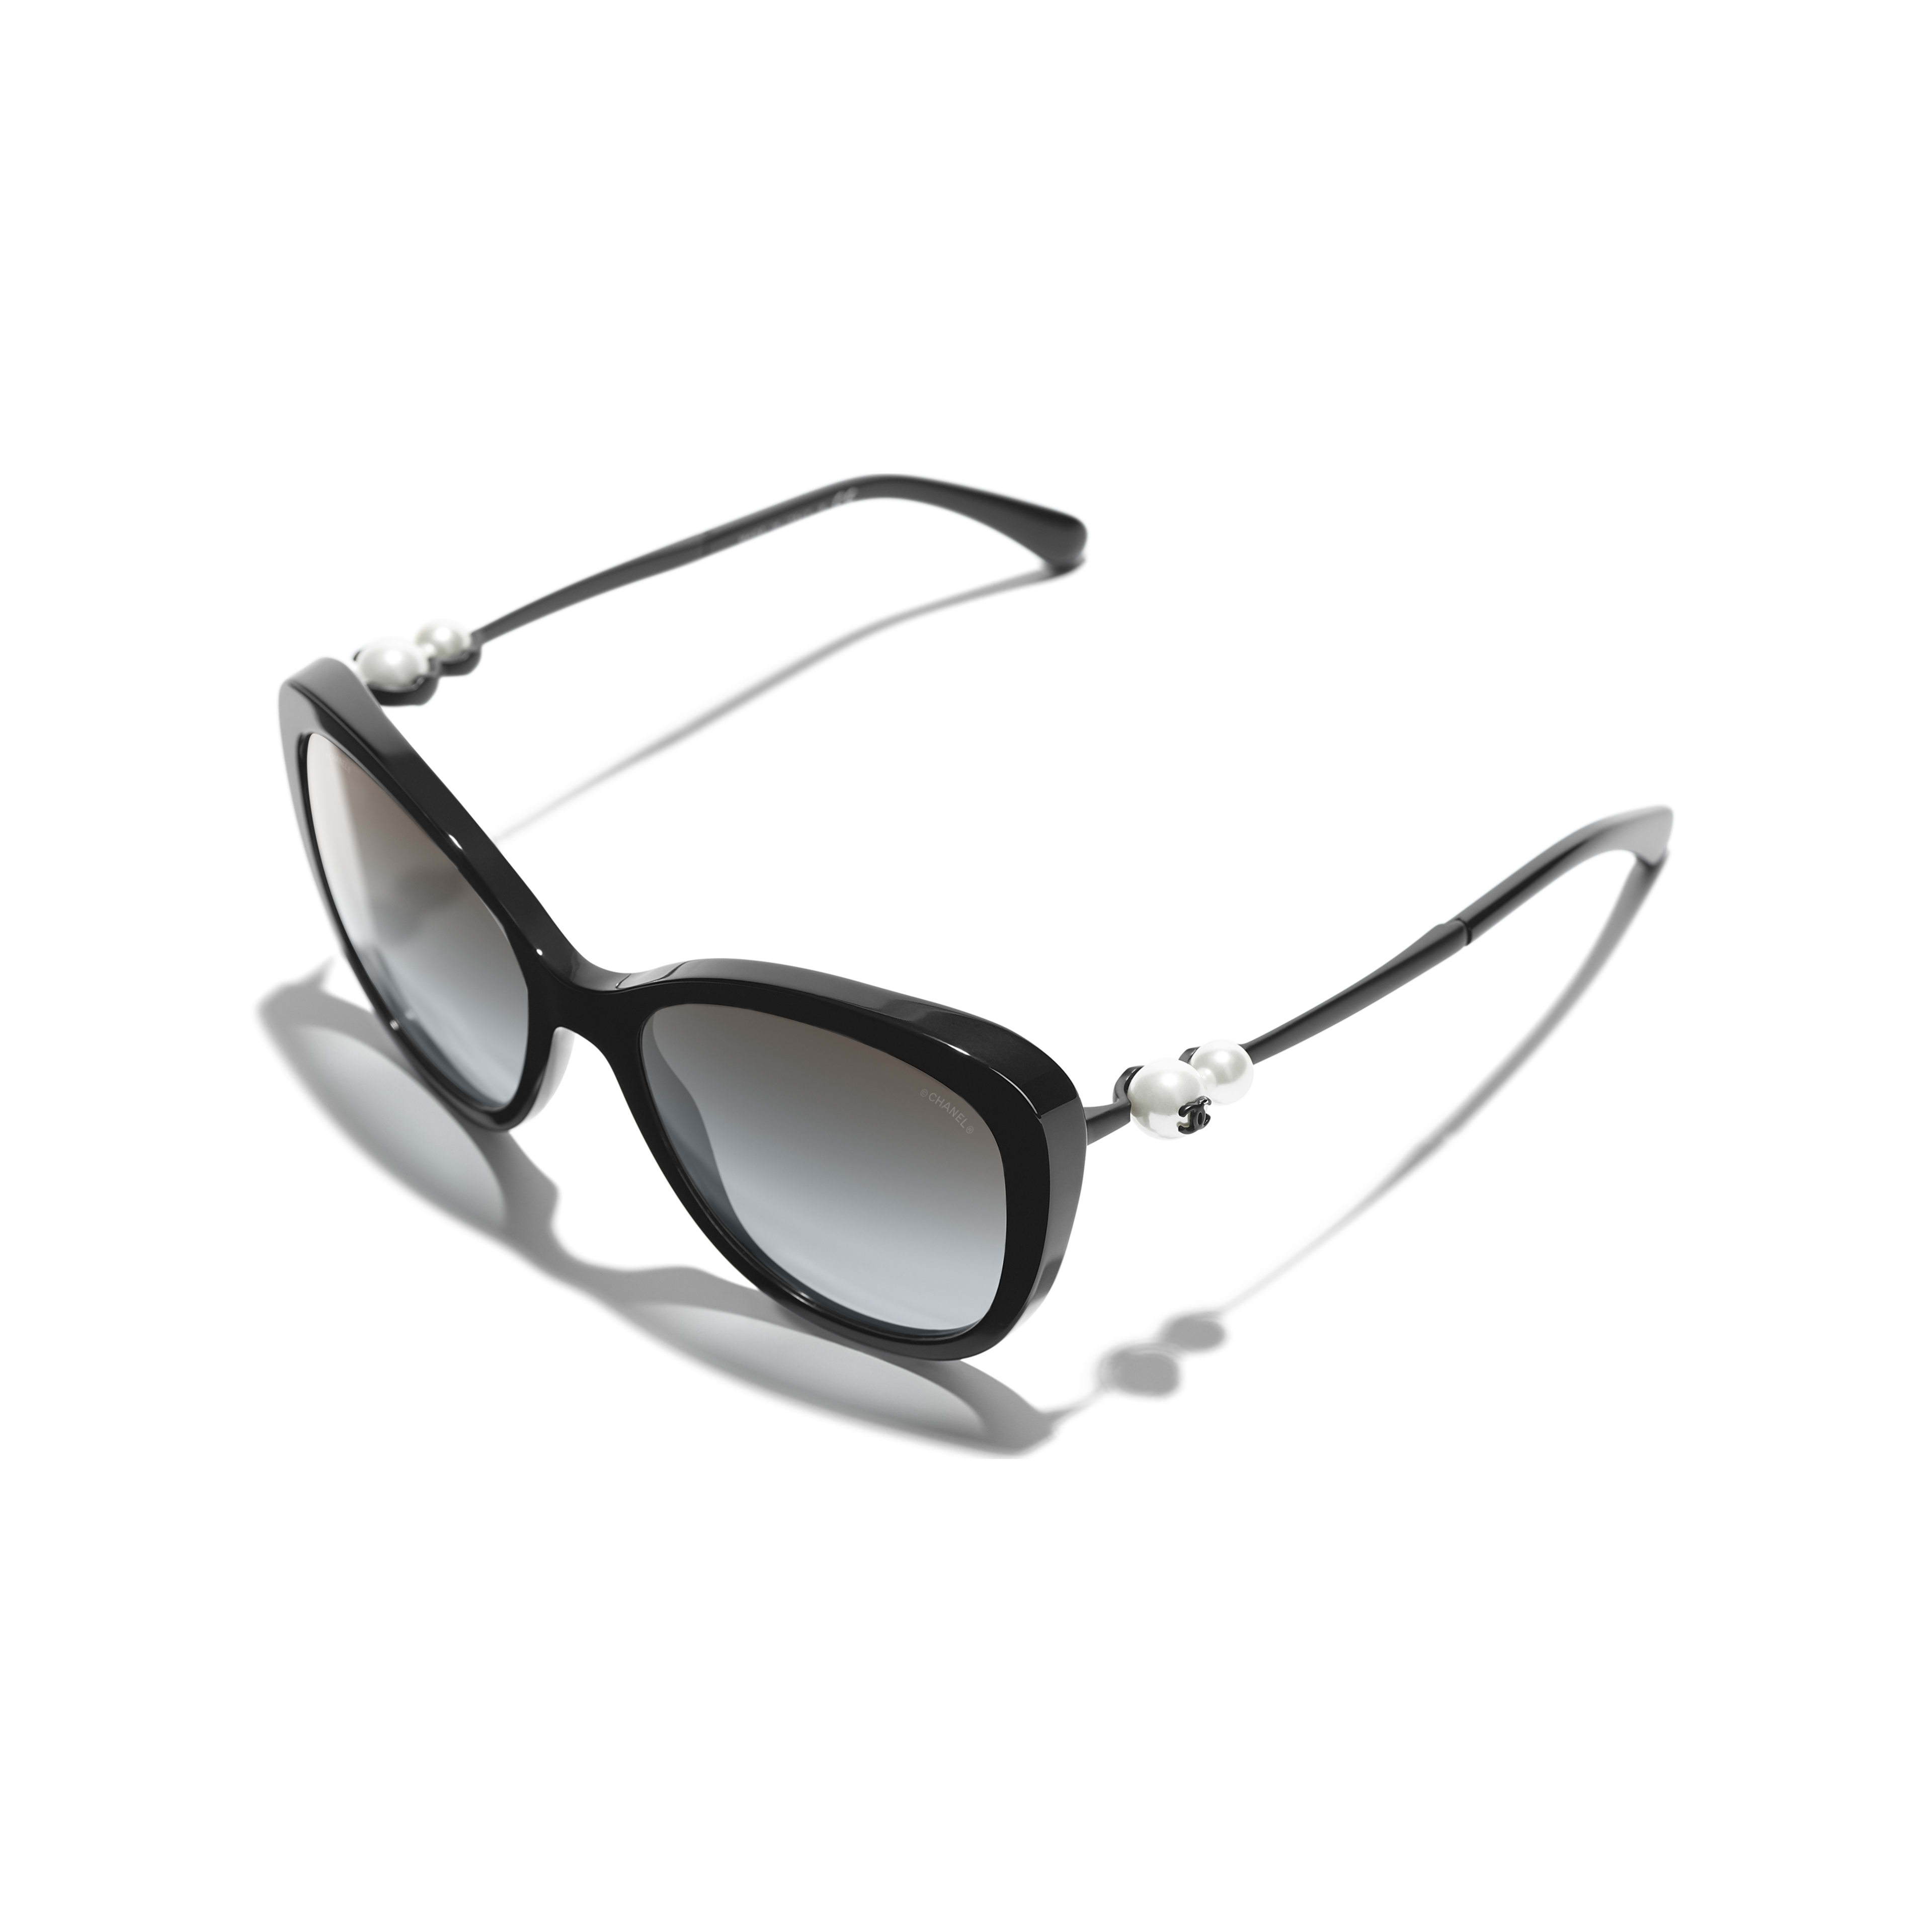 Butterfly Sunglasses - Black - Acetate & Imitation Pearls - CHANEL - Extra view - see standard sized version